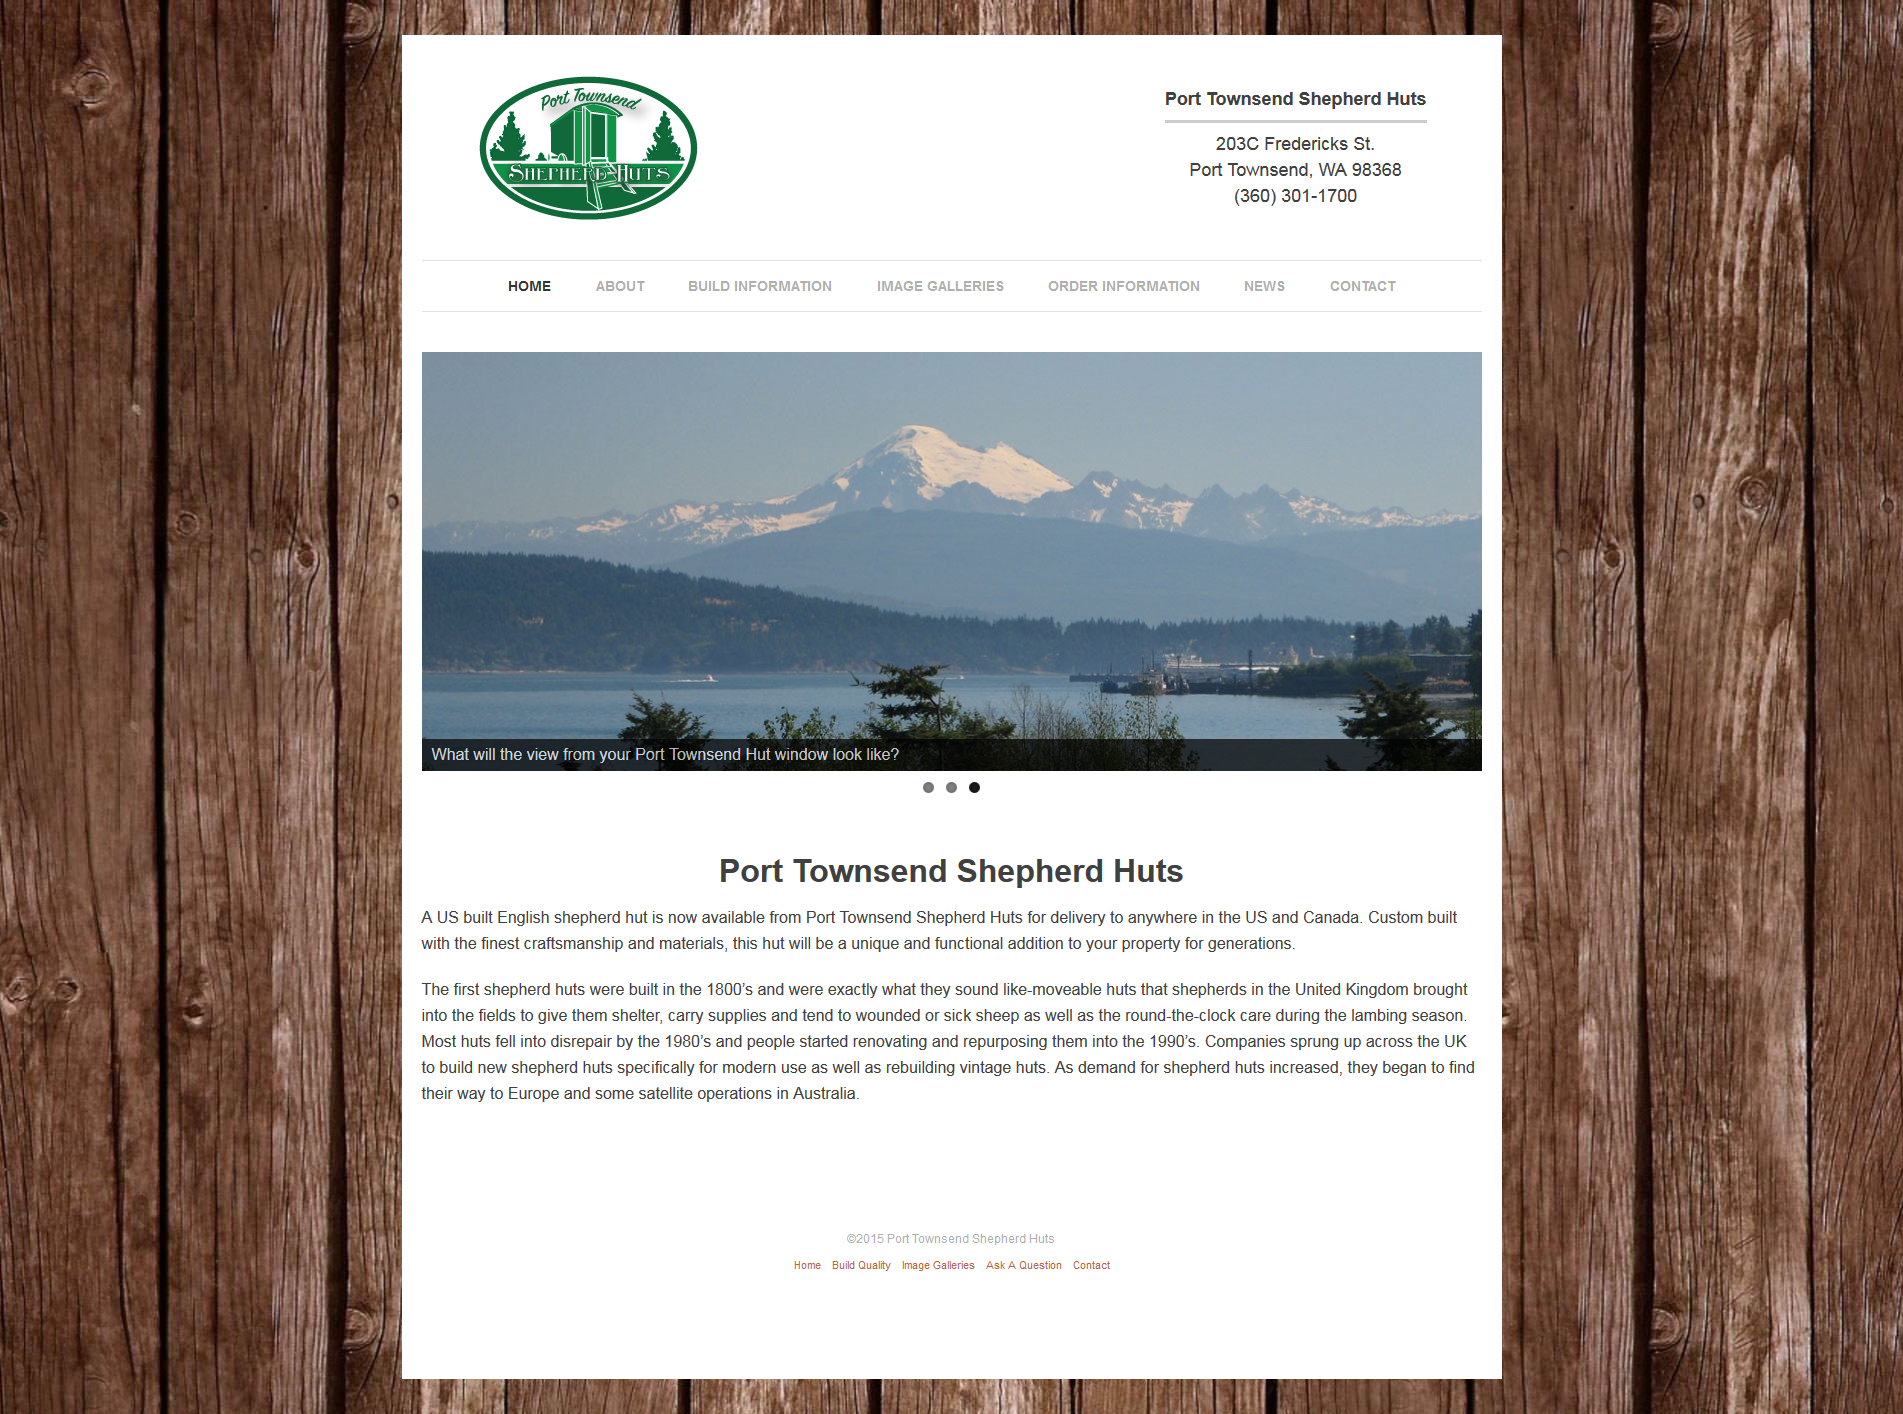 Port Townsend Shepherd Huts